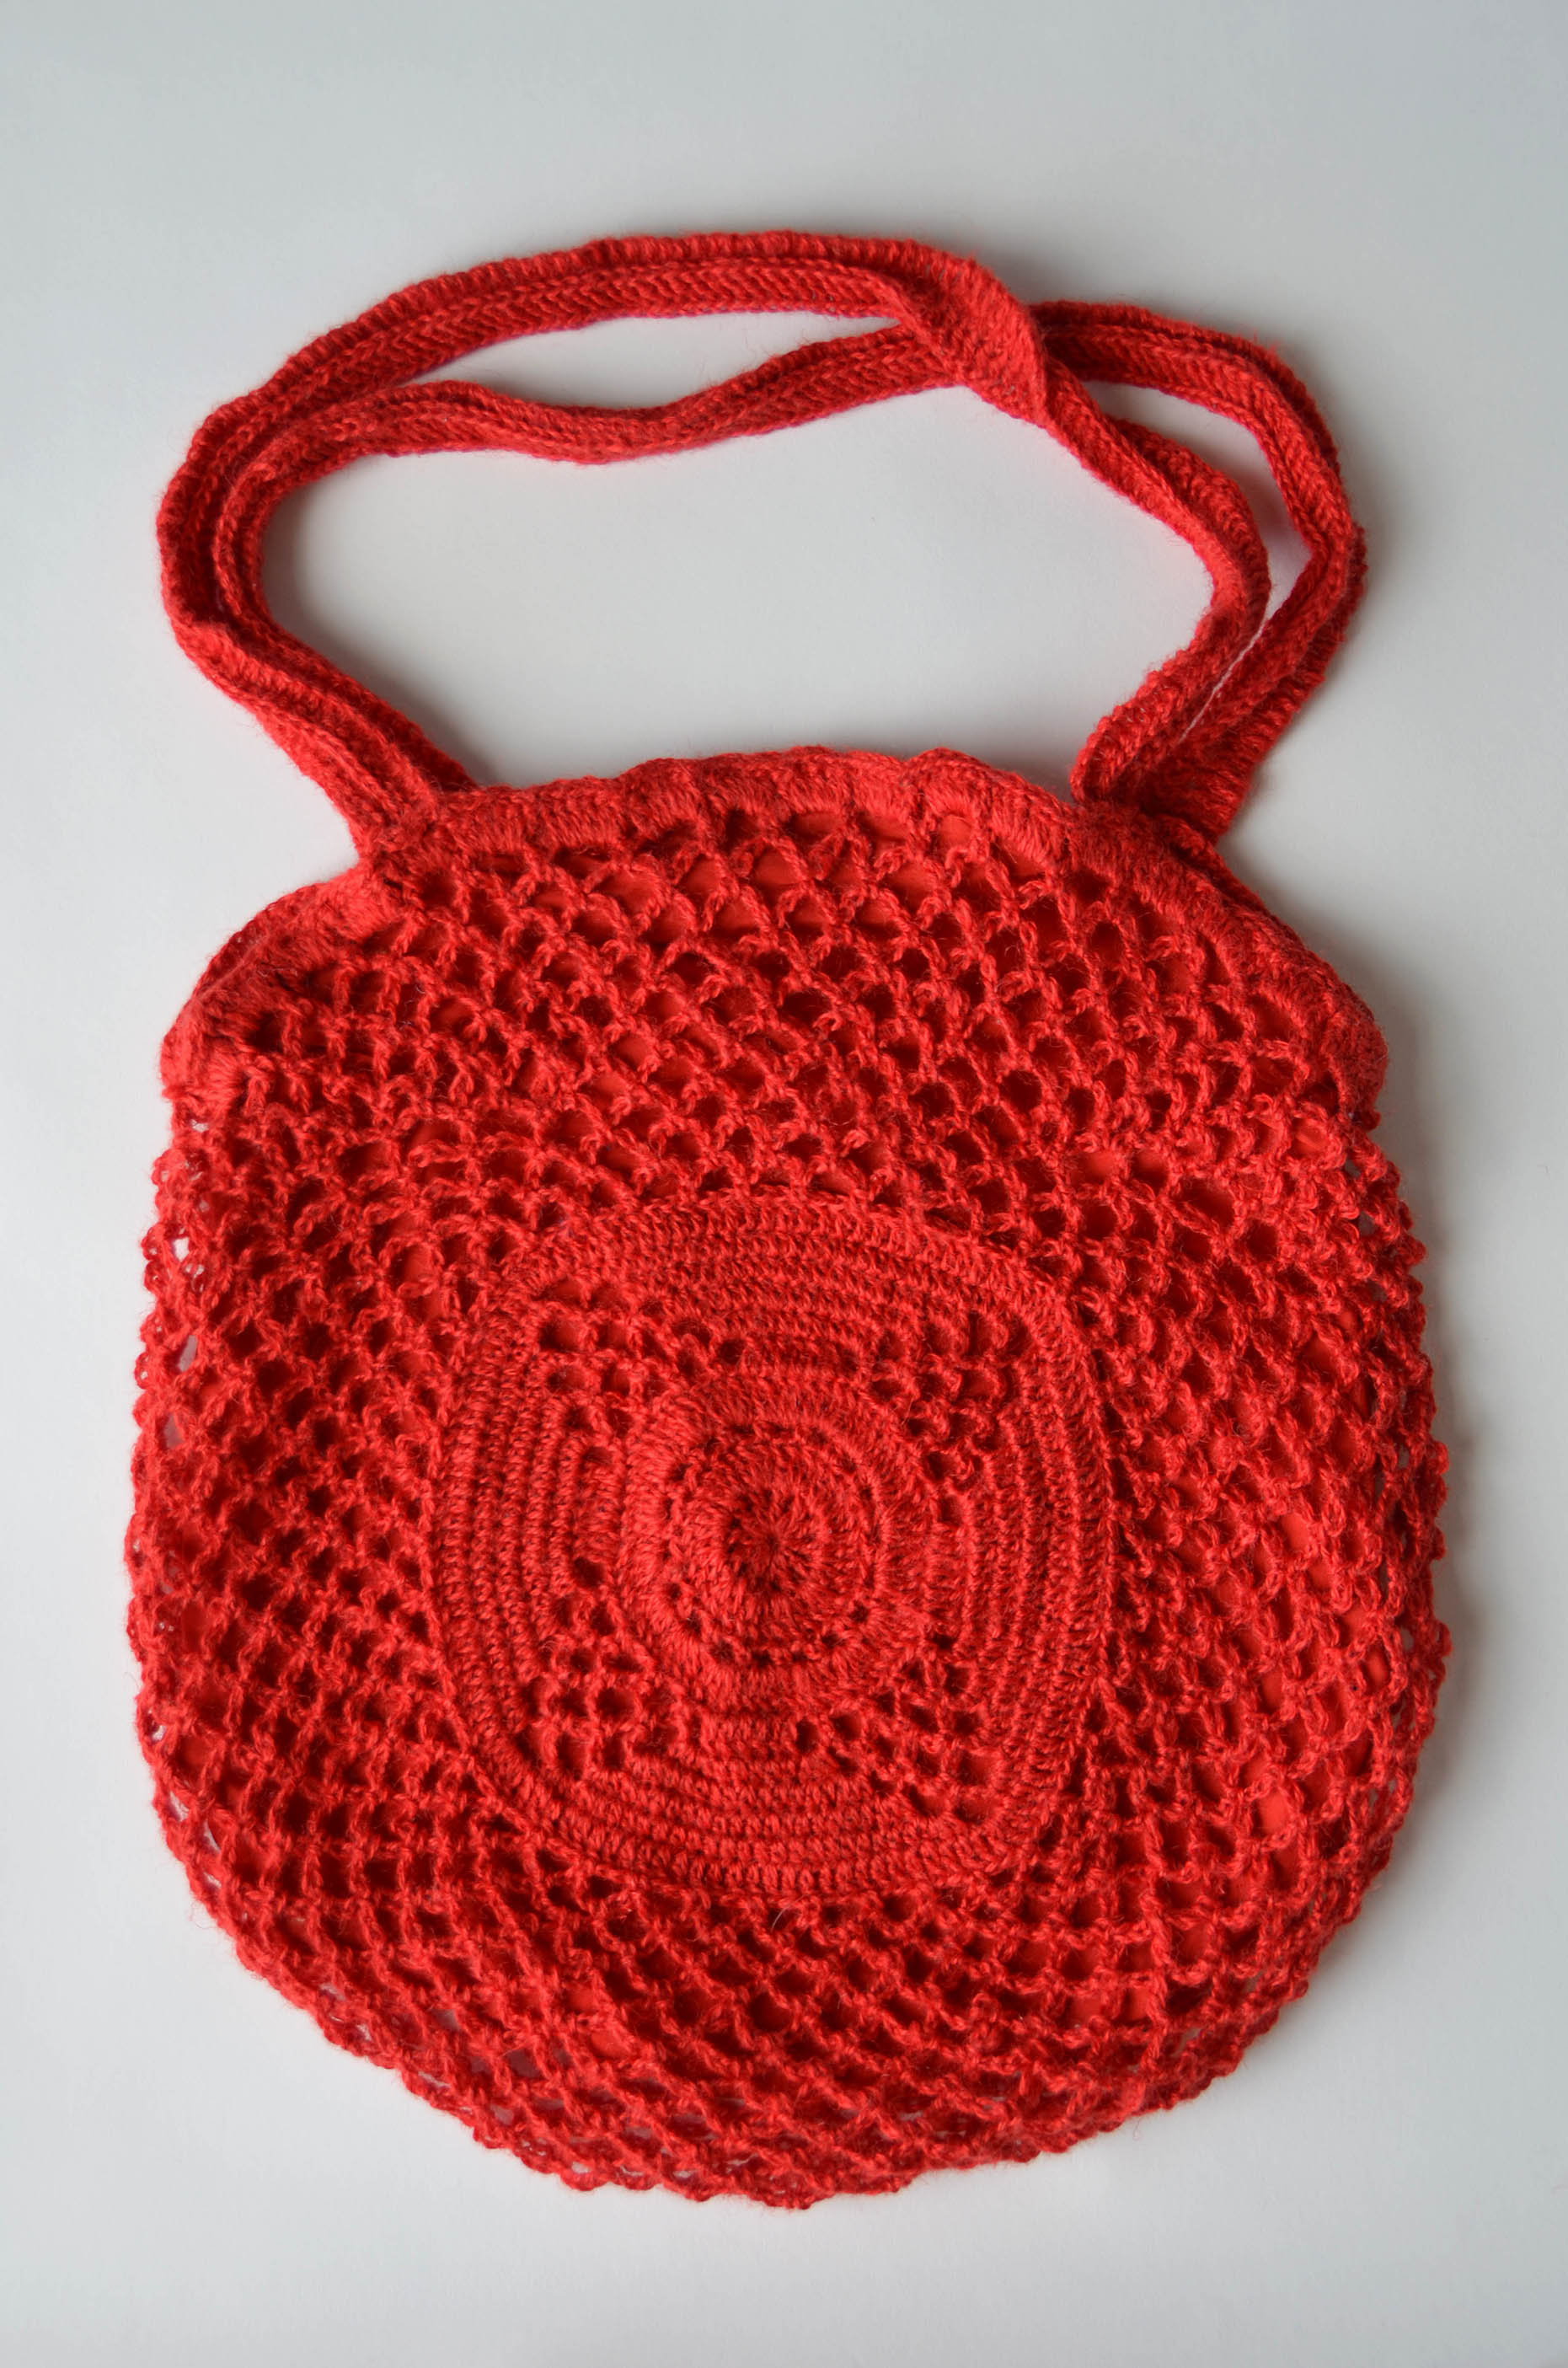 Yarn Bag Pattern : Free Pattern Friday - Sunfire Bag Universal Yarn Creative Network